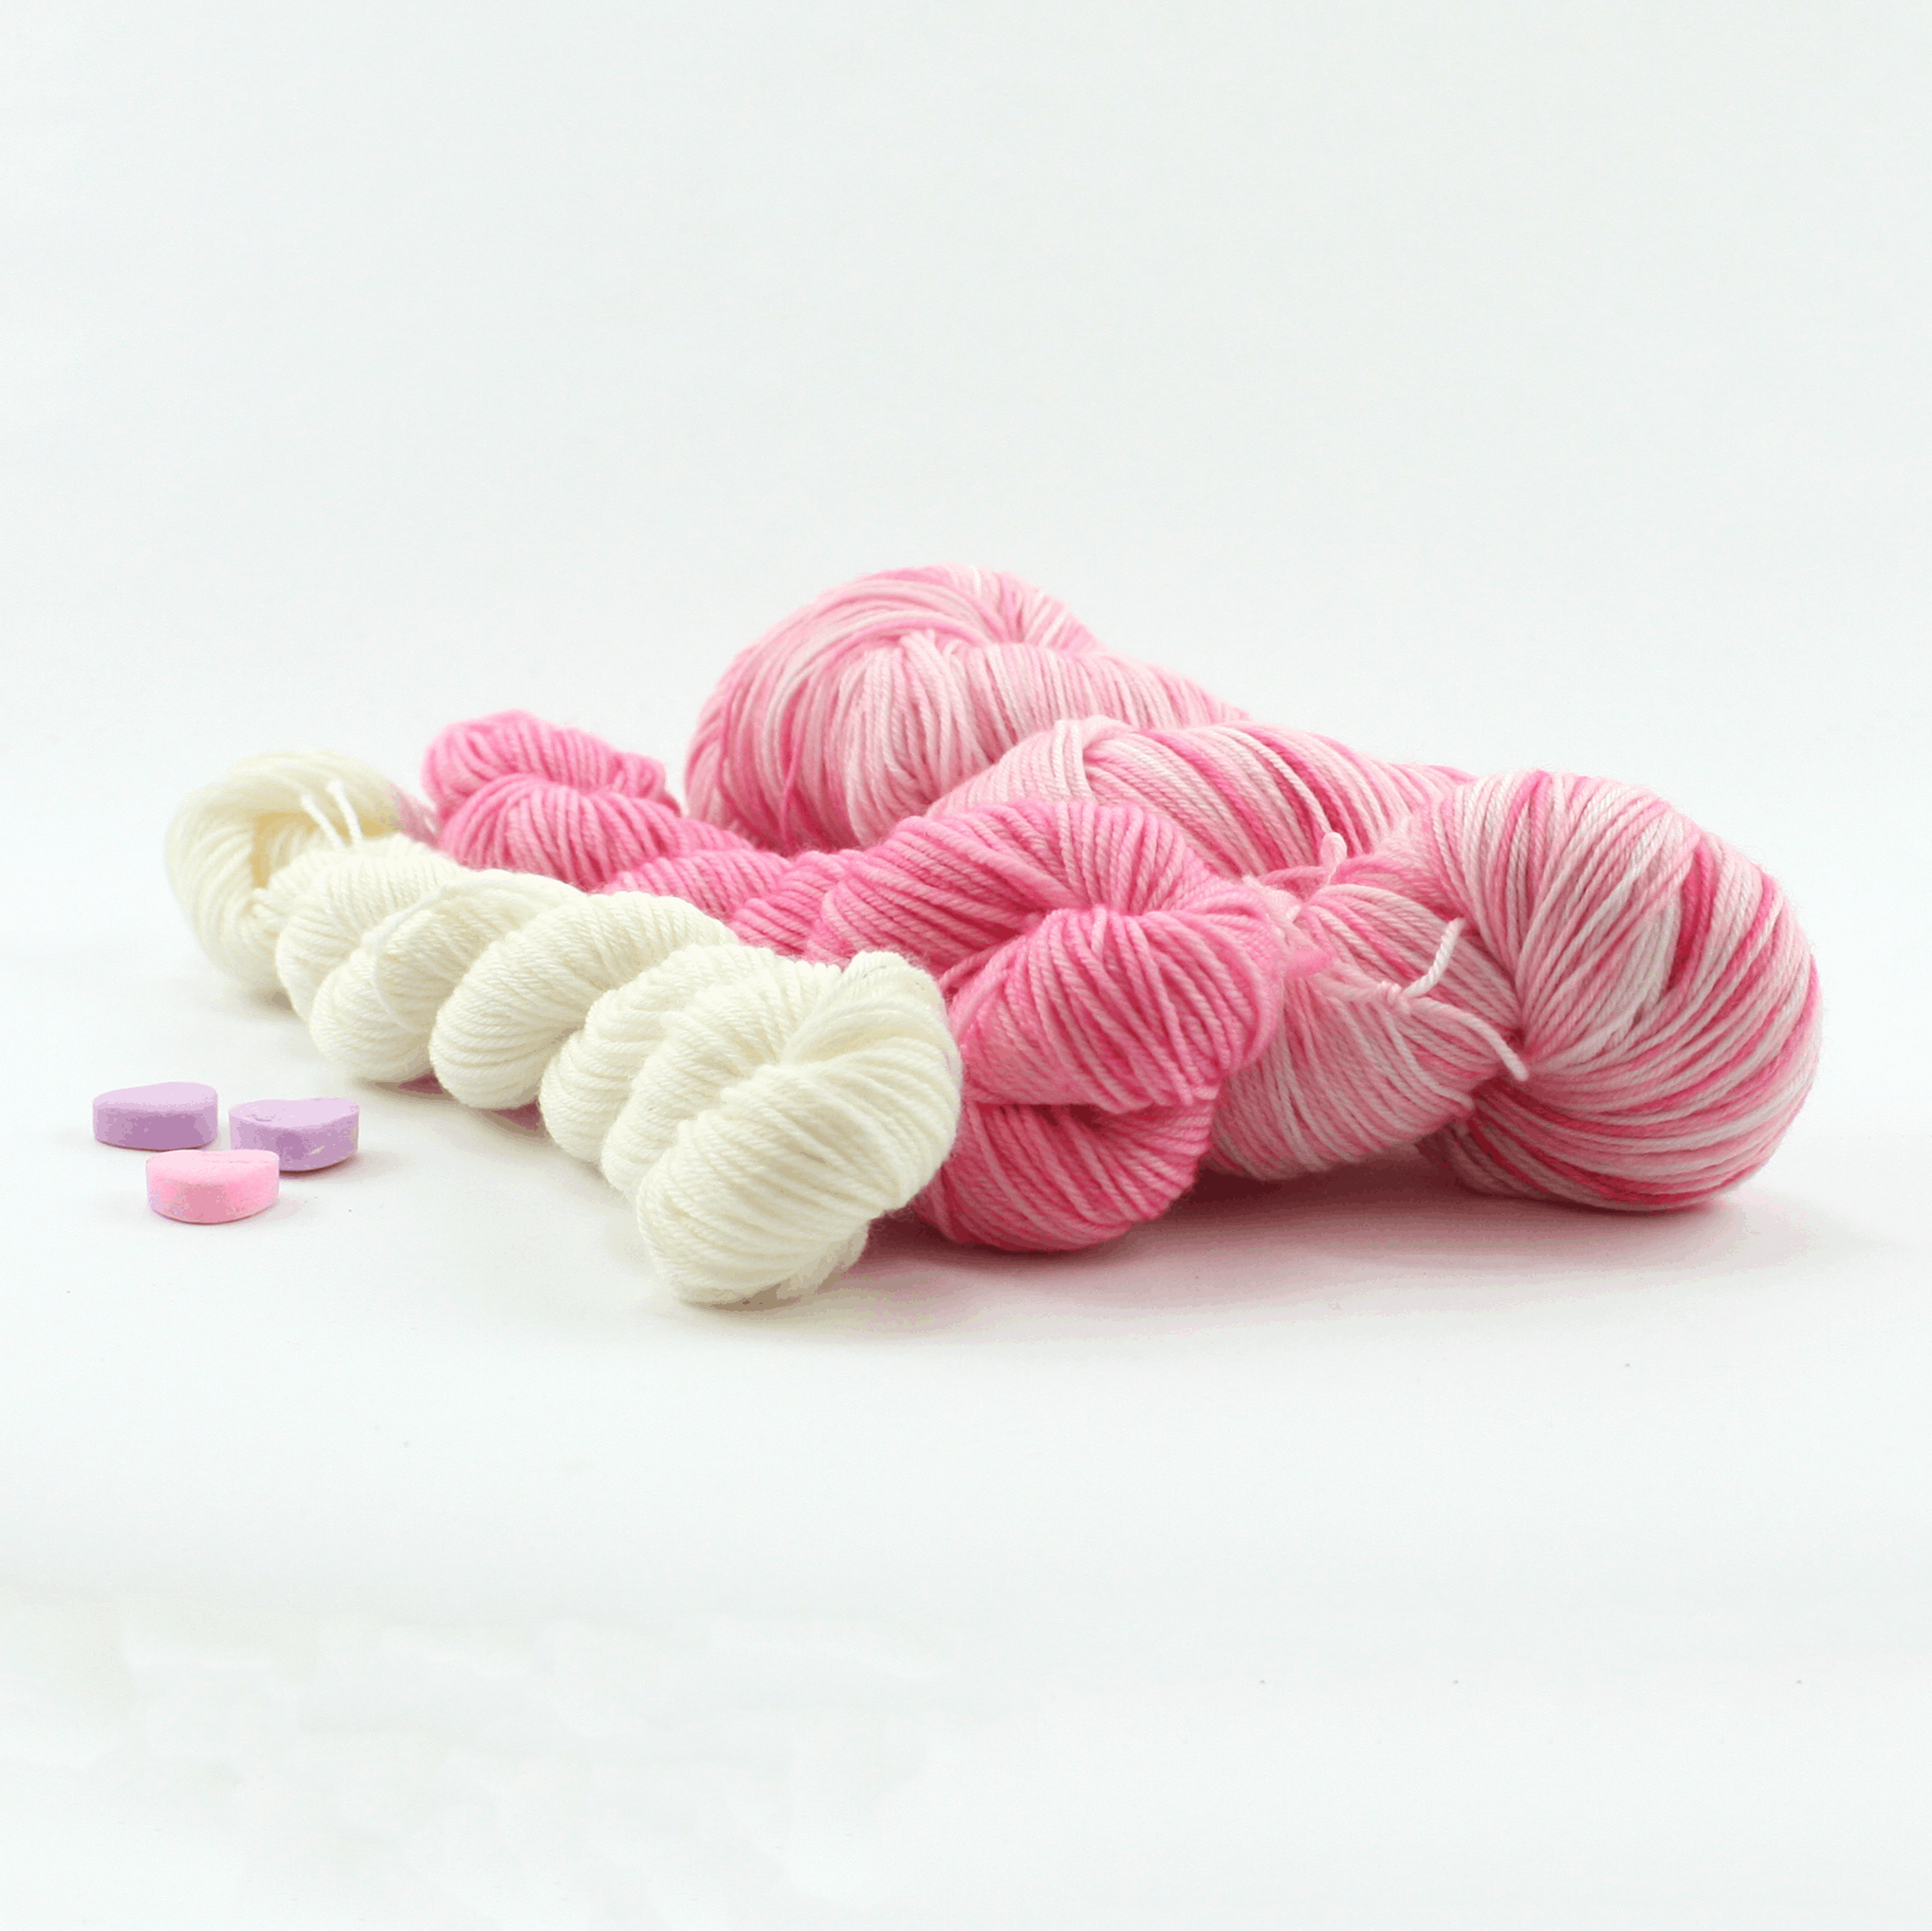 White and pink yarn with pink candy hearts.